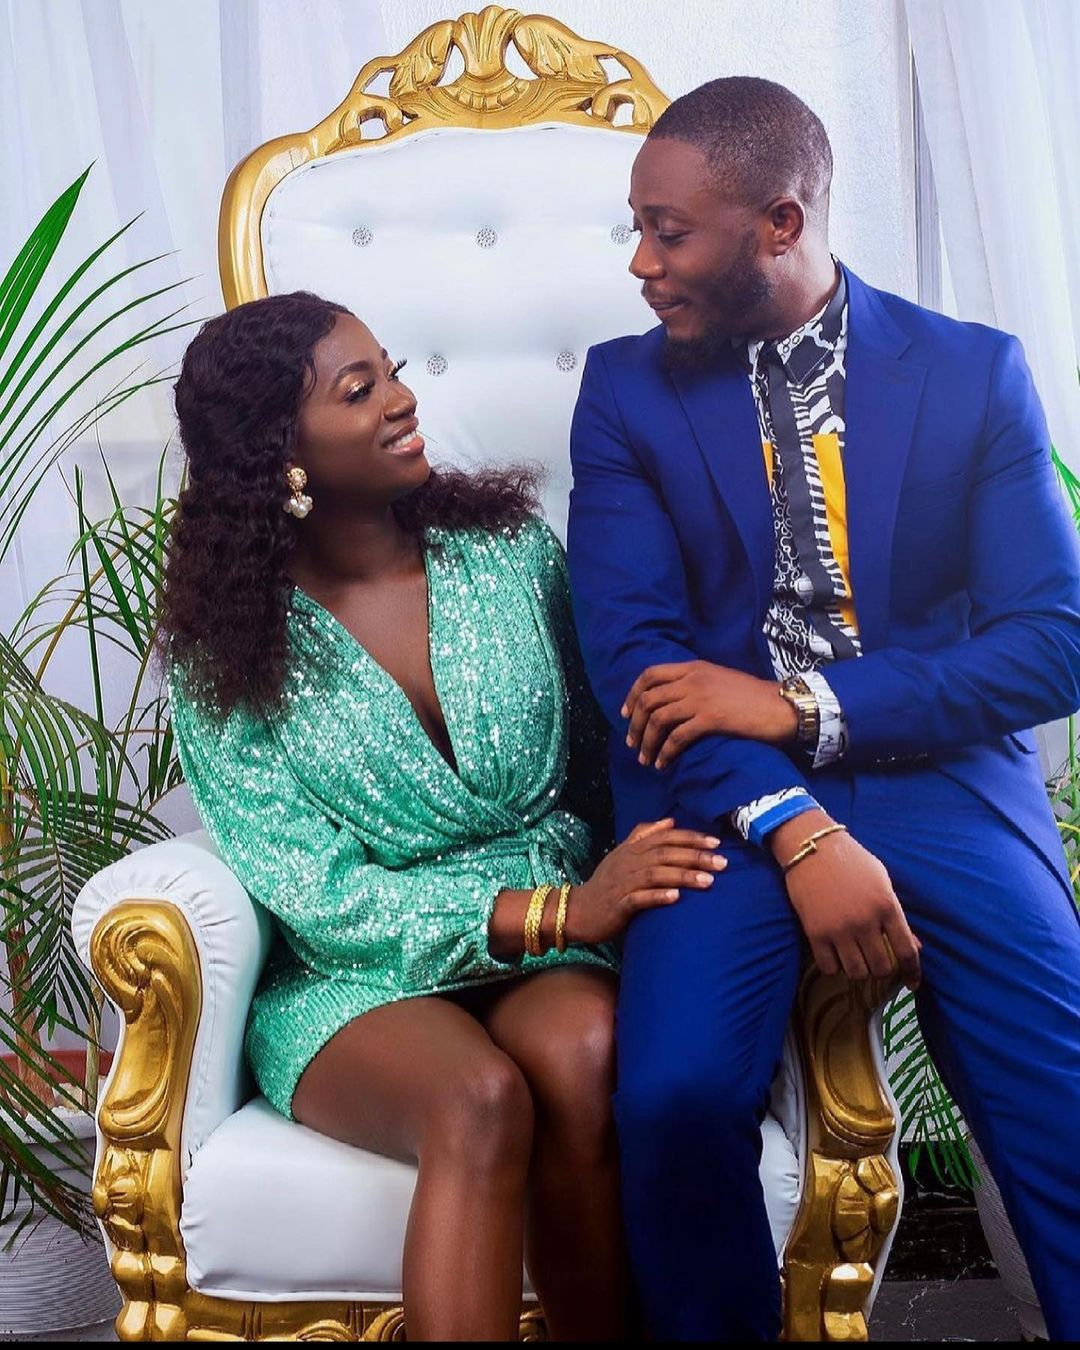 Pasuma in tears at daughter's wedding, K1 DE Ultimate performs